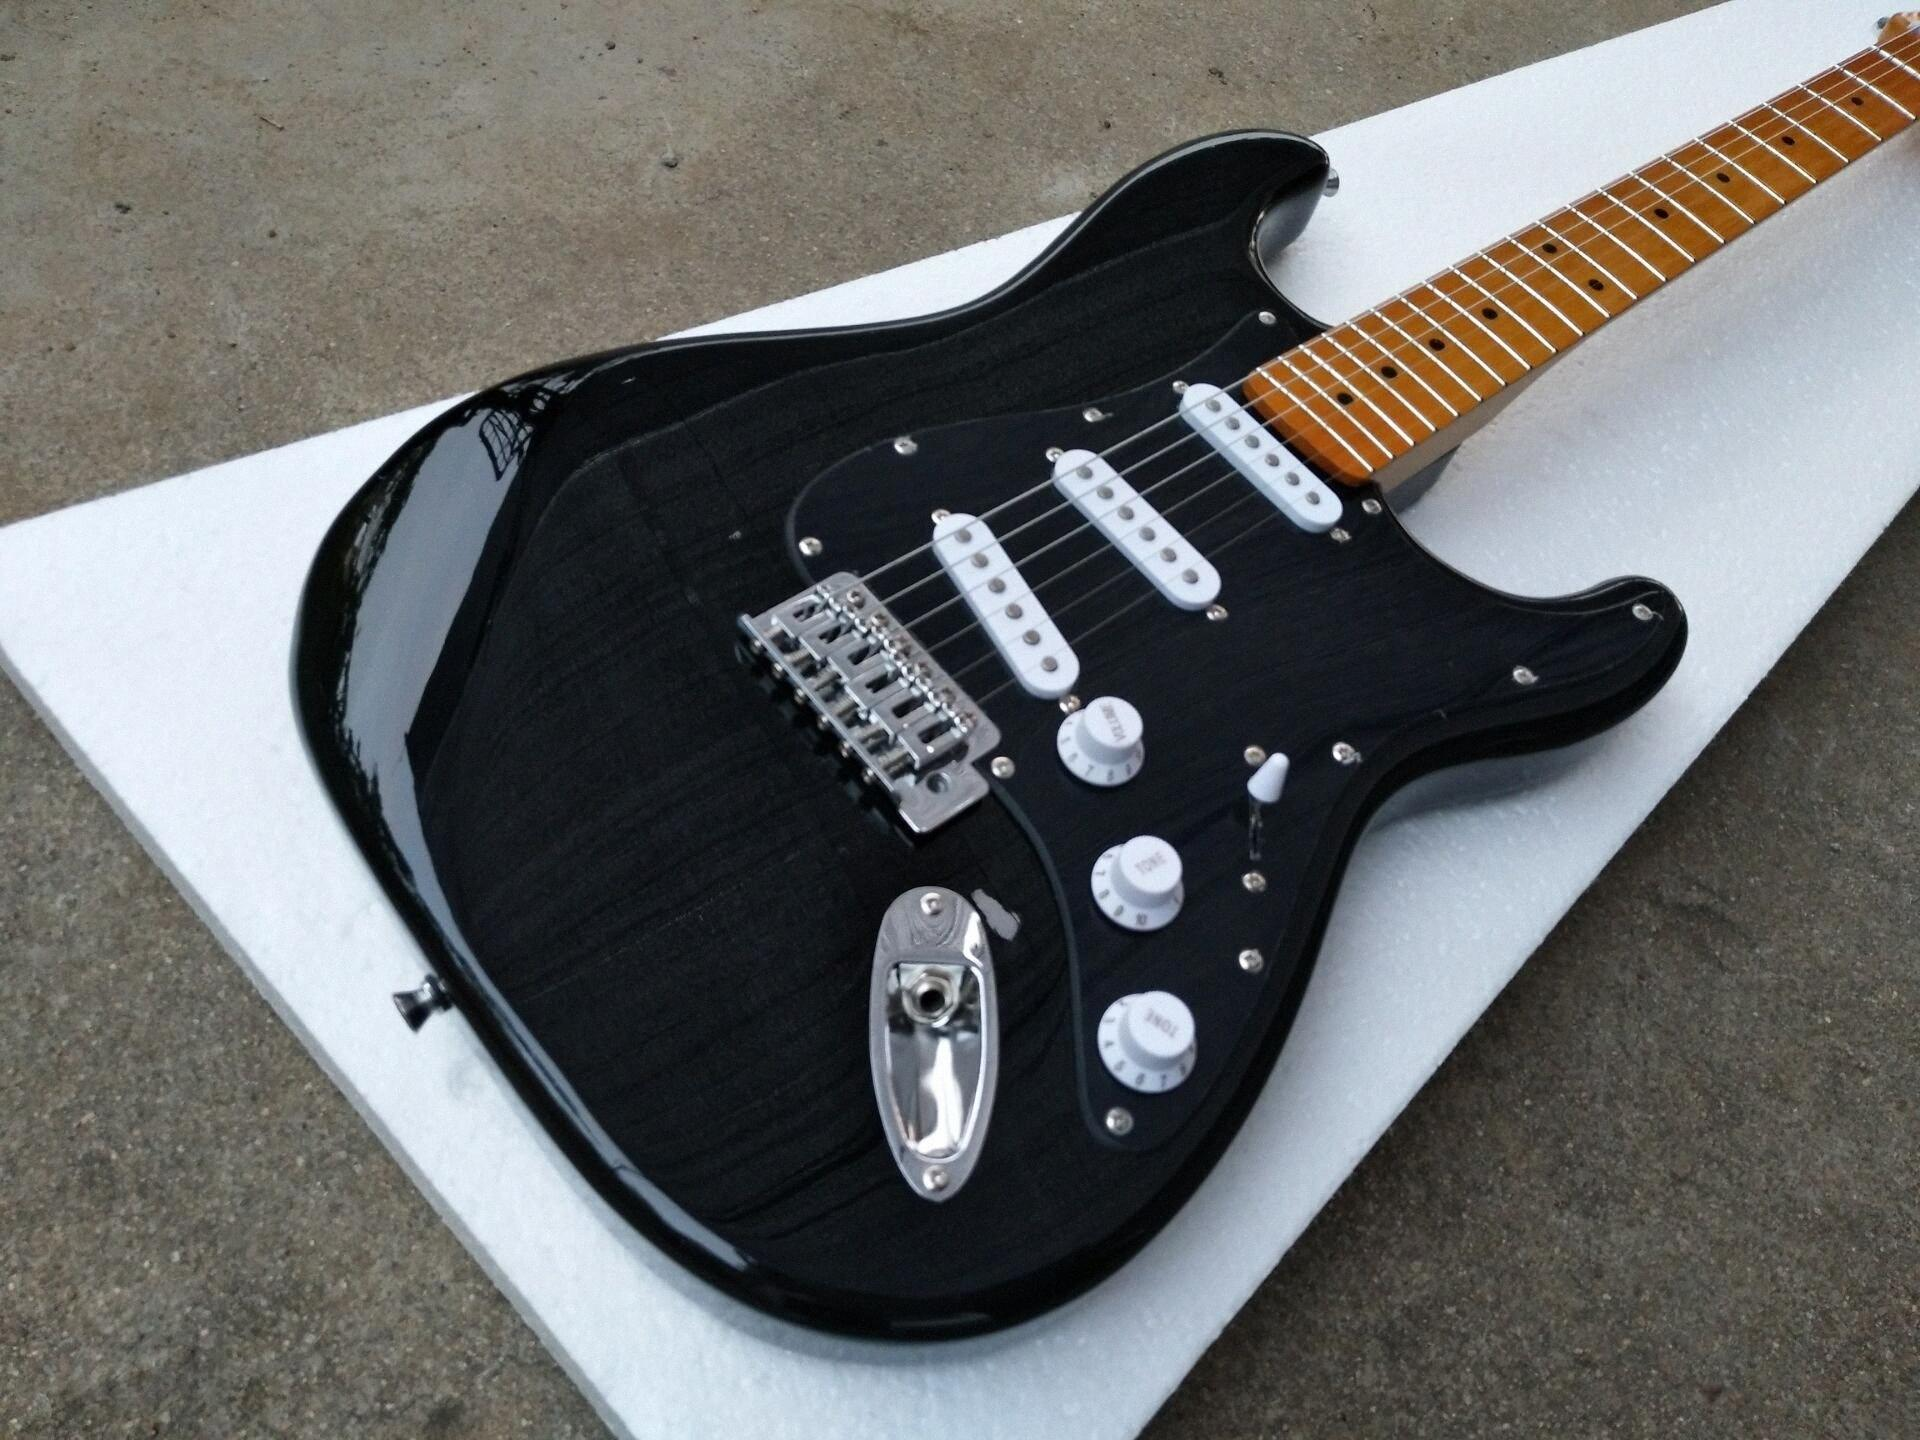 Custom Shop David Gilmour Strat Black ST Electric Guitar 3 Ply All Black Pickguard, Gloss Paint Yellow Neck & Fingerboard, One String oTxS#